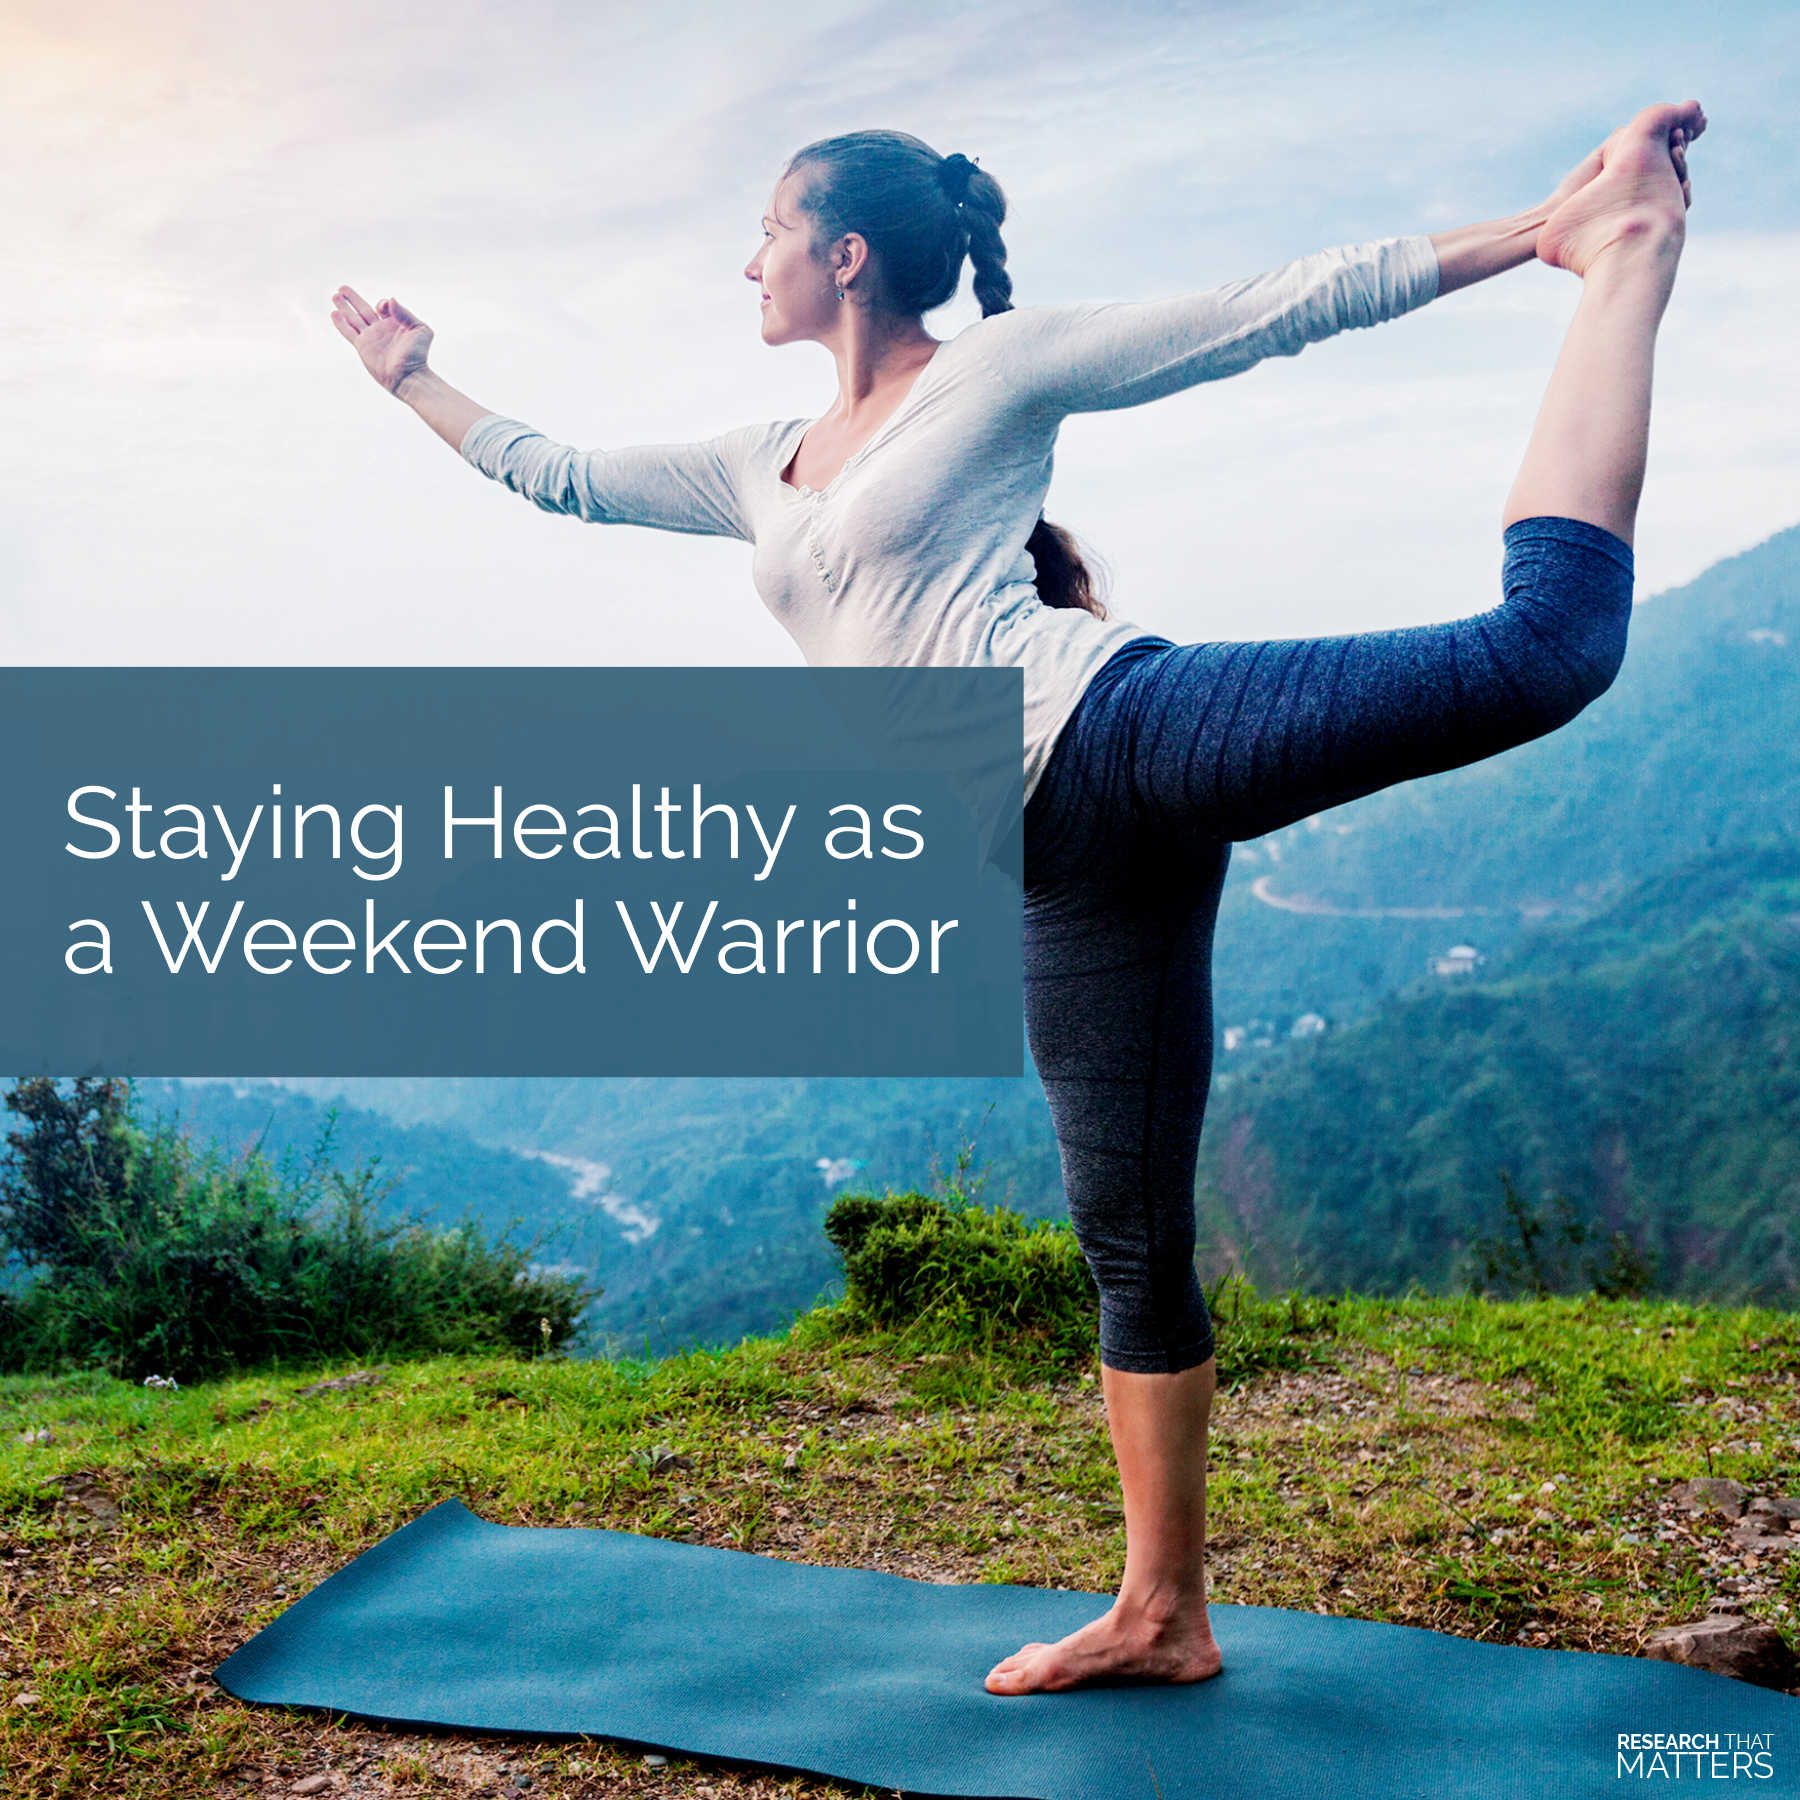 Staying Healthy as a Weekend Warrior